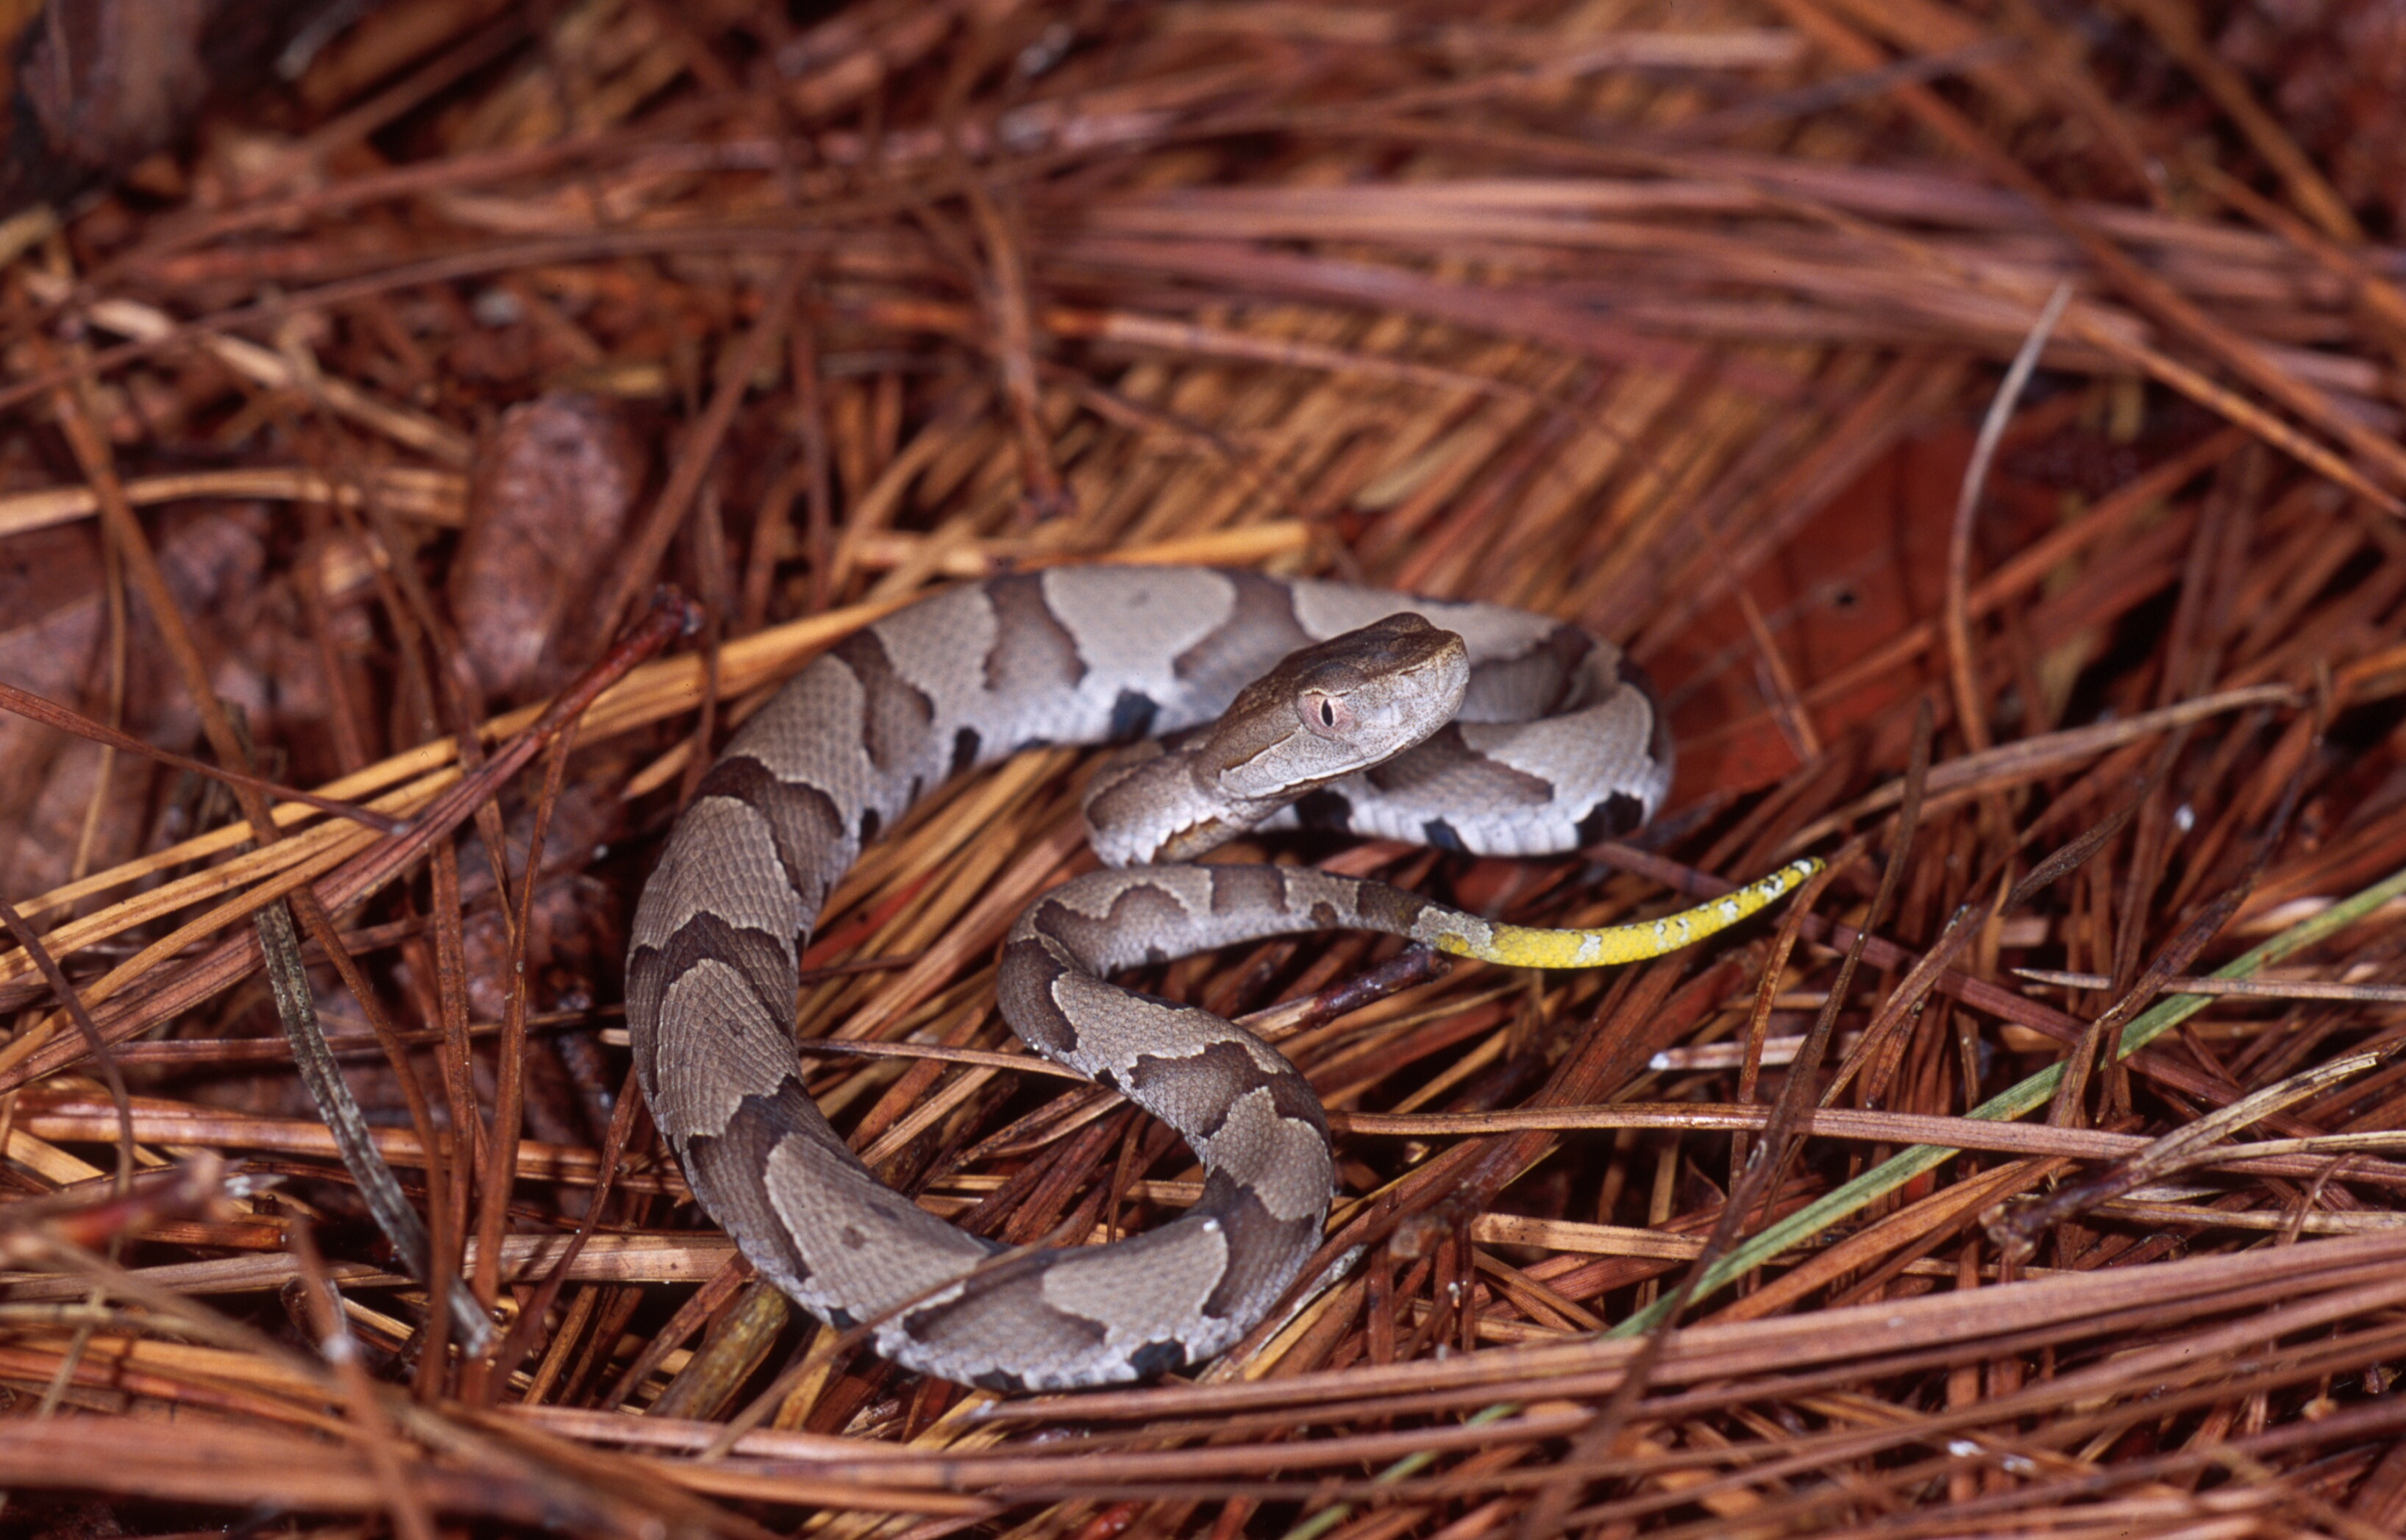 Juvenile Copperhead Photo by Eric Stine